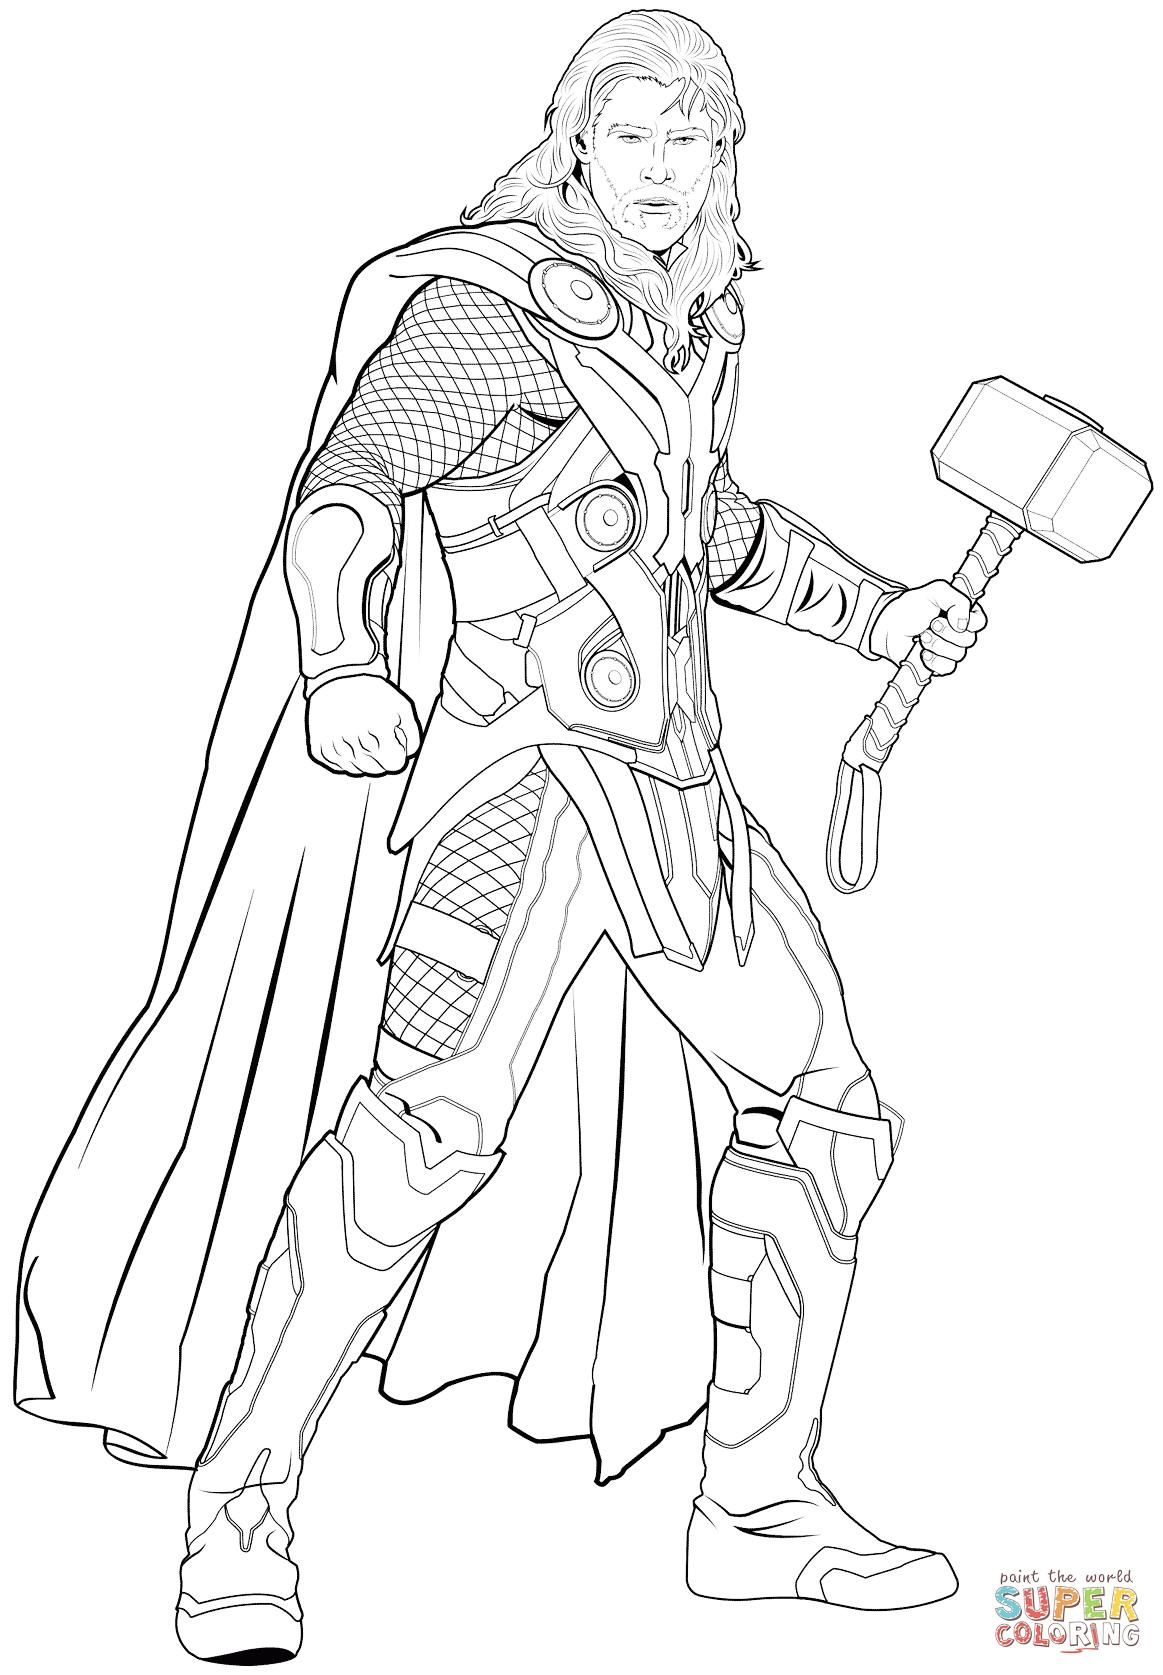 avengers coloring sheet thor avengers drawing at getdrawings free download coloring avengers sheet